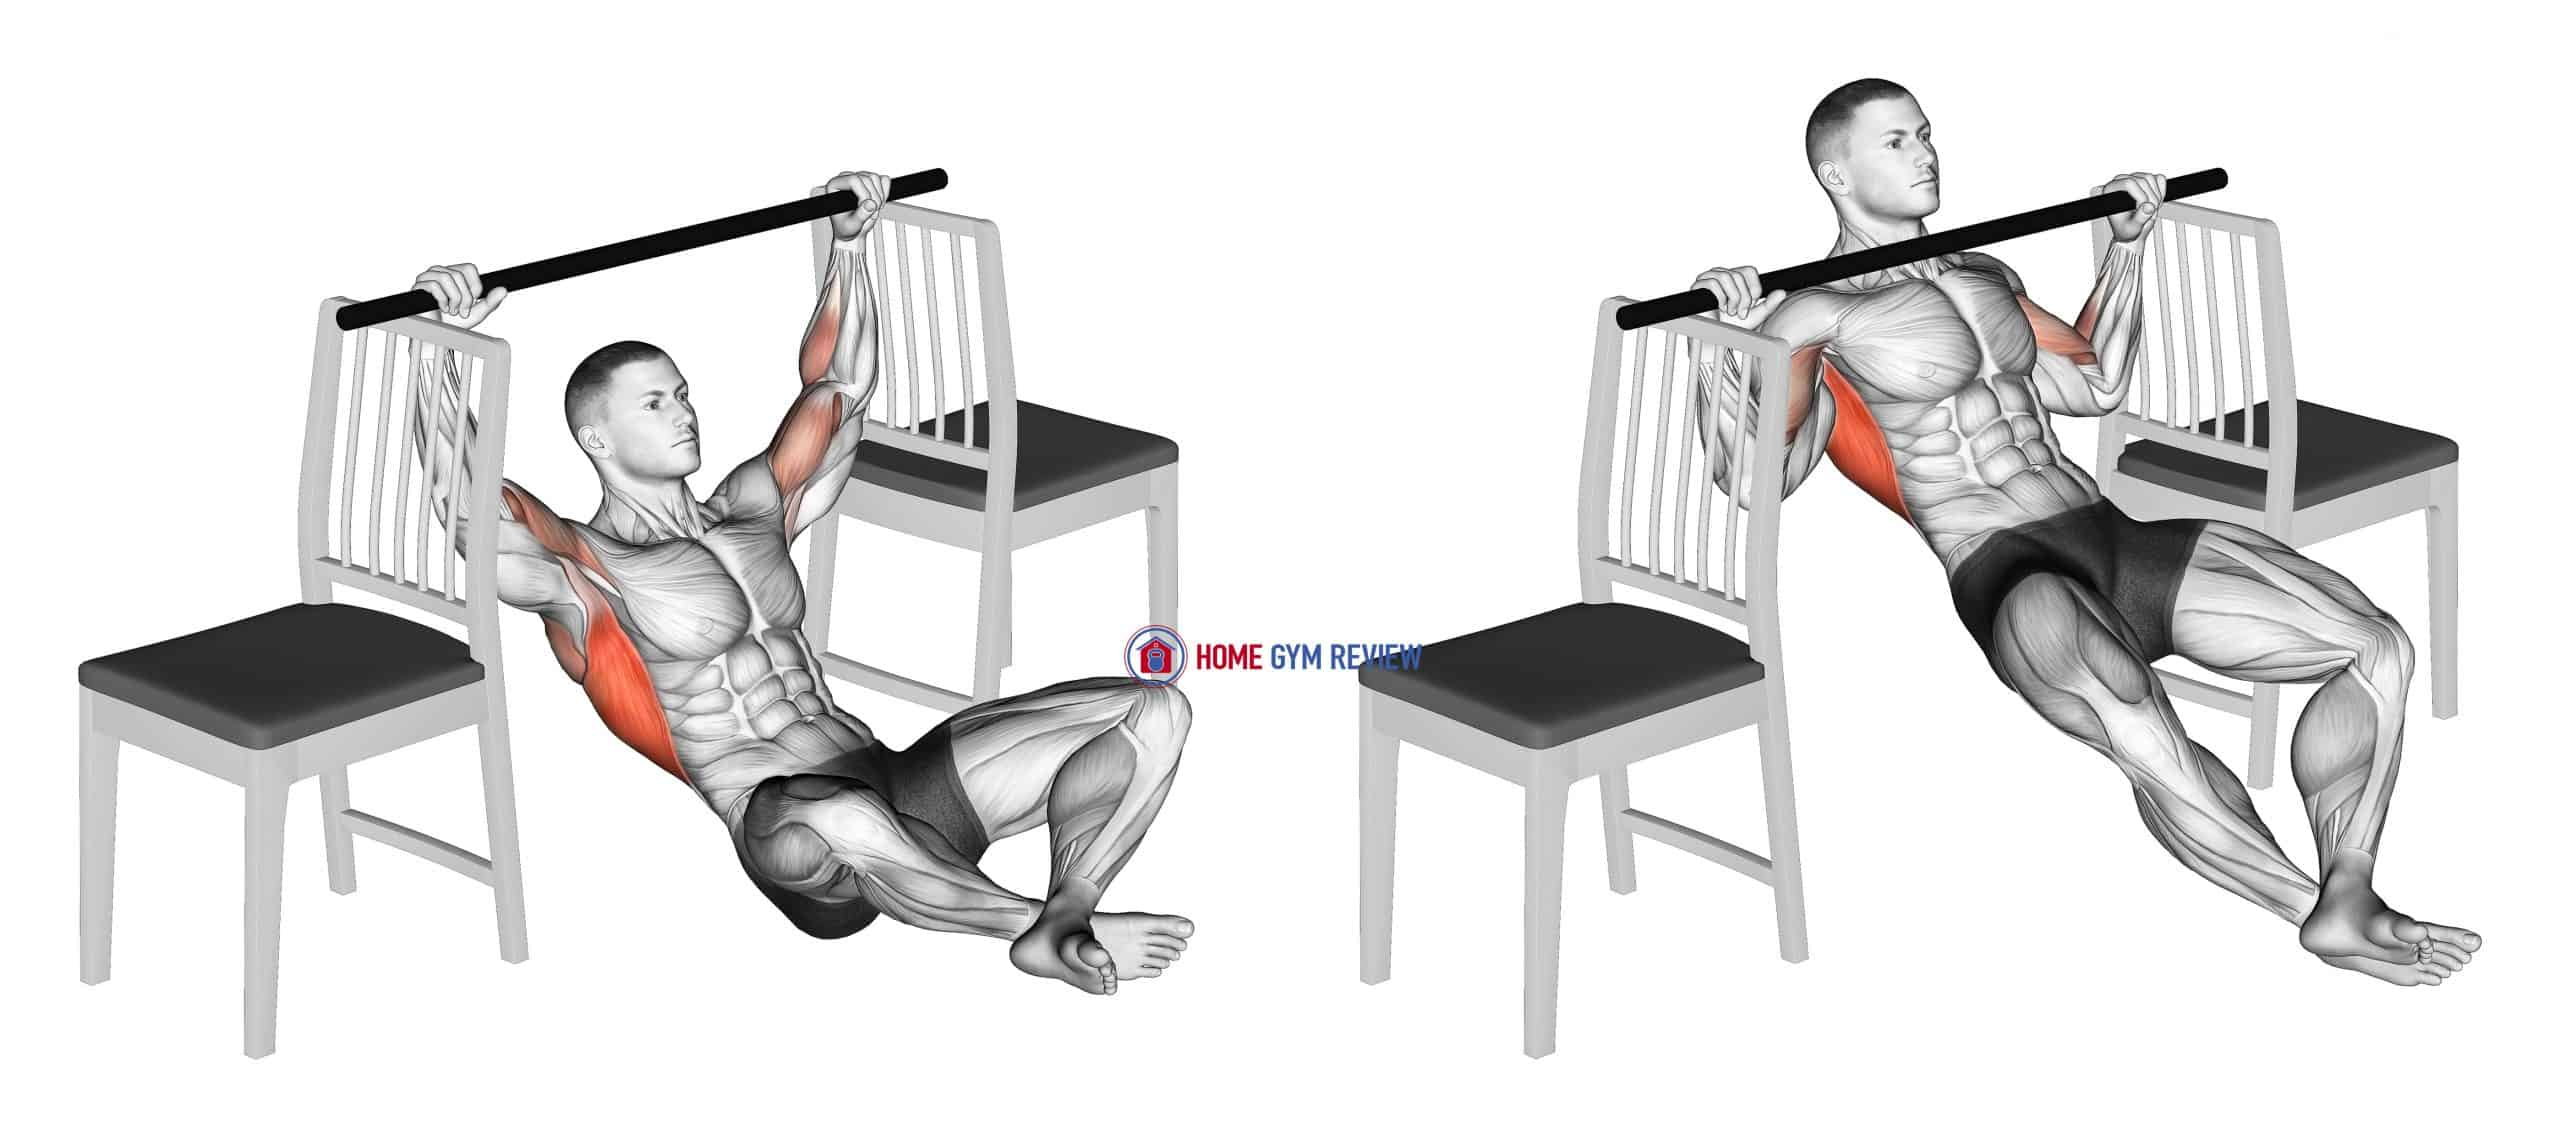 Seated Pull-up between Chairs